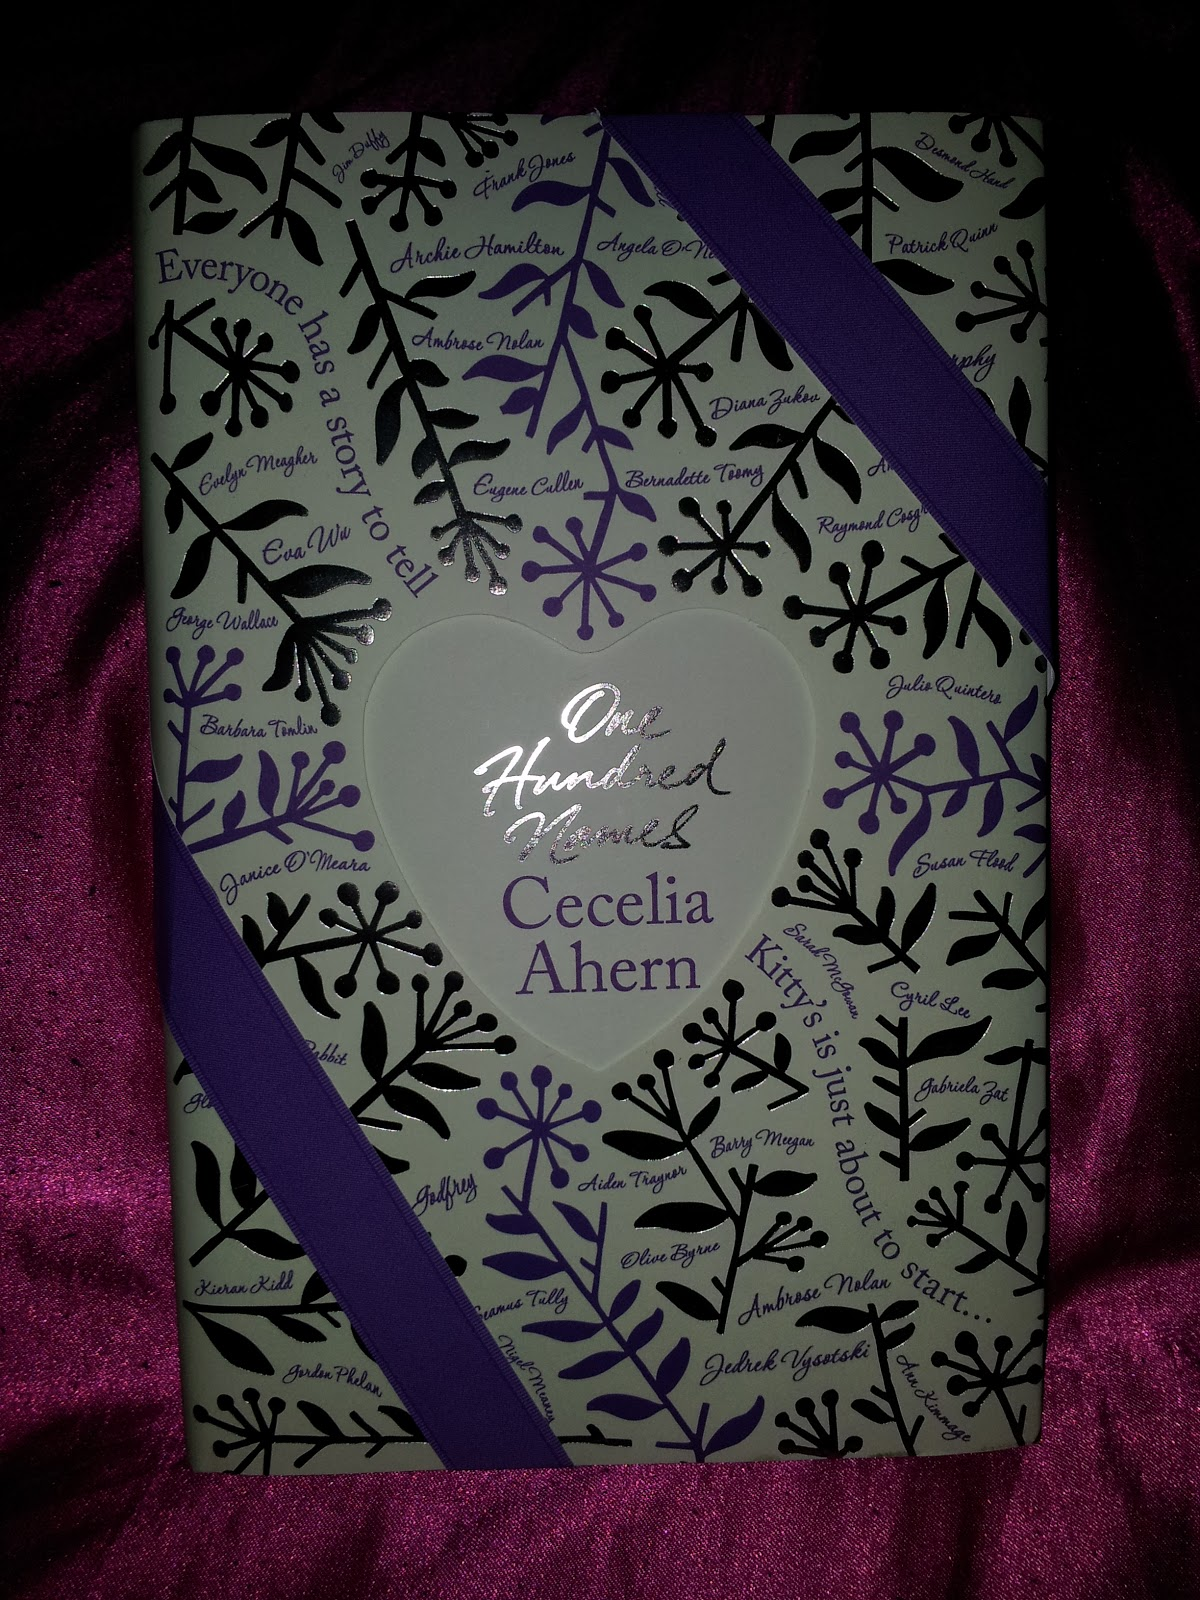 Miss Bookworm Reviews One Hundred Names By Cecelia Ahern border=